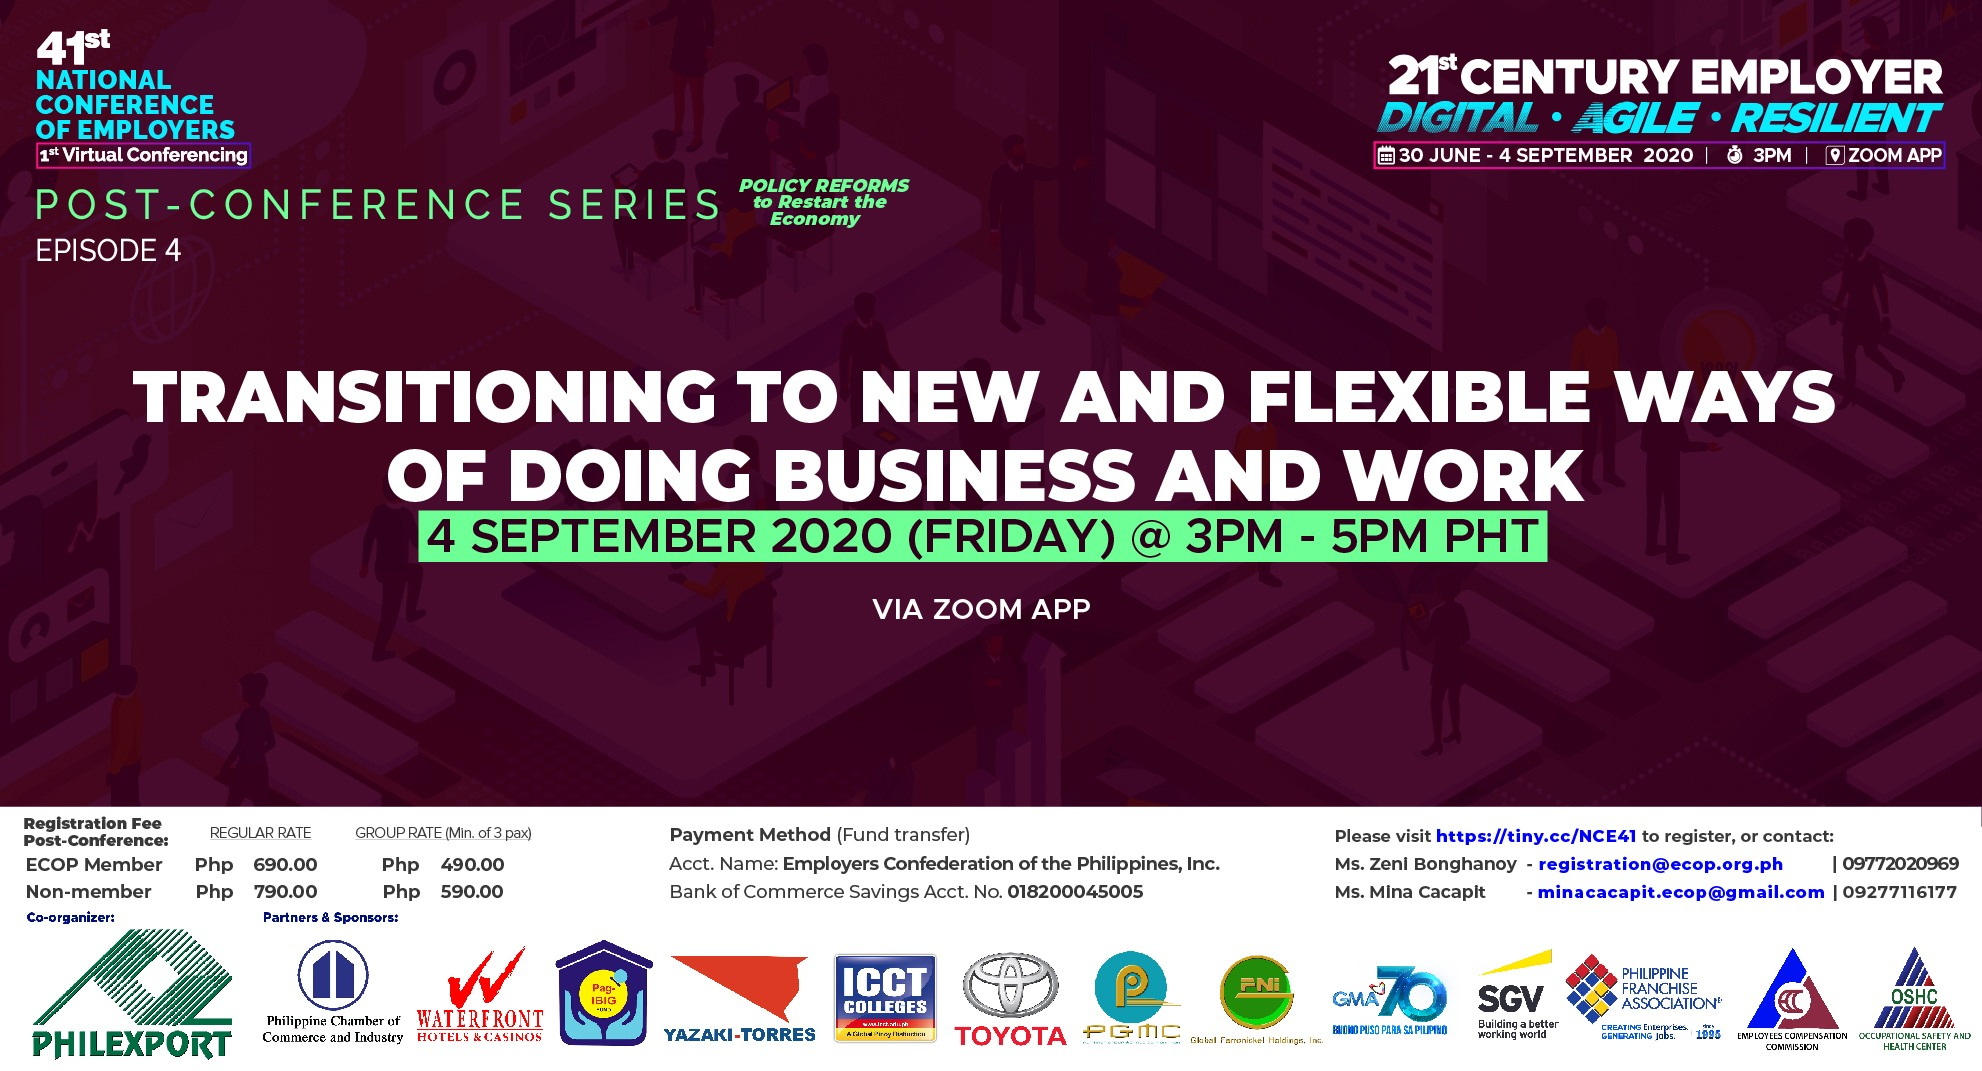 Transitioning to New and Flexible Ways of Doing Business and Work